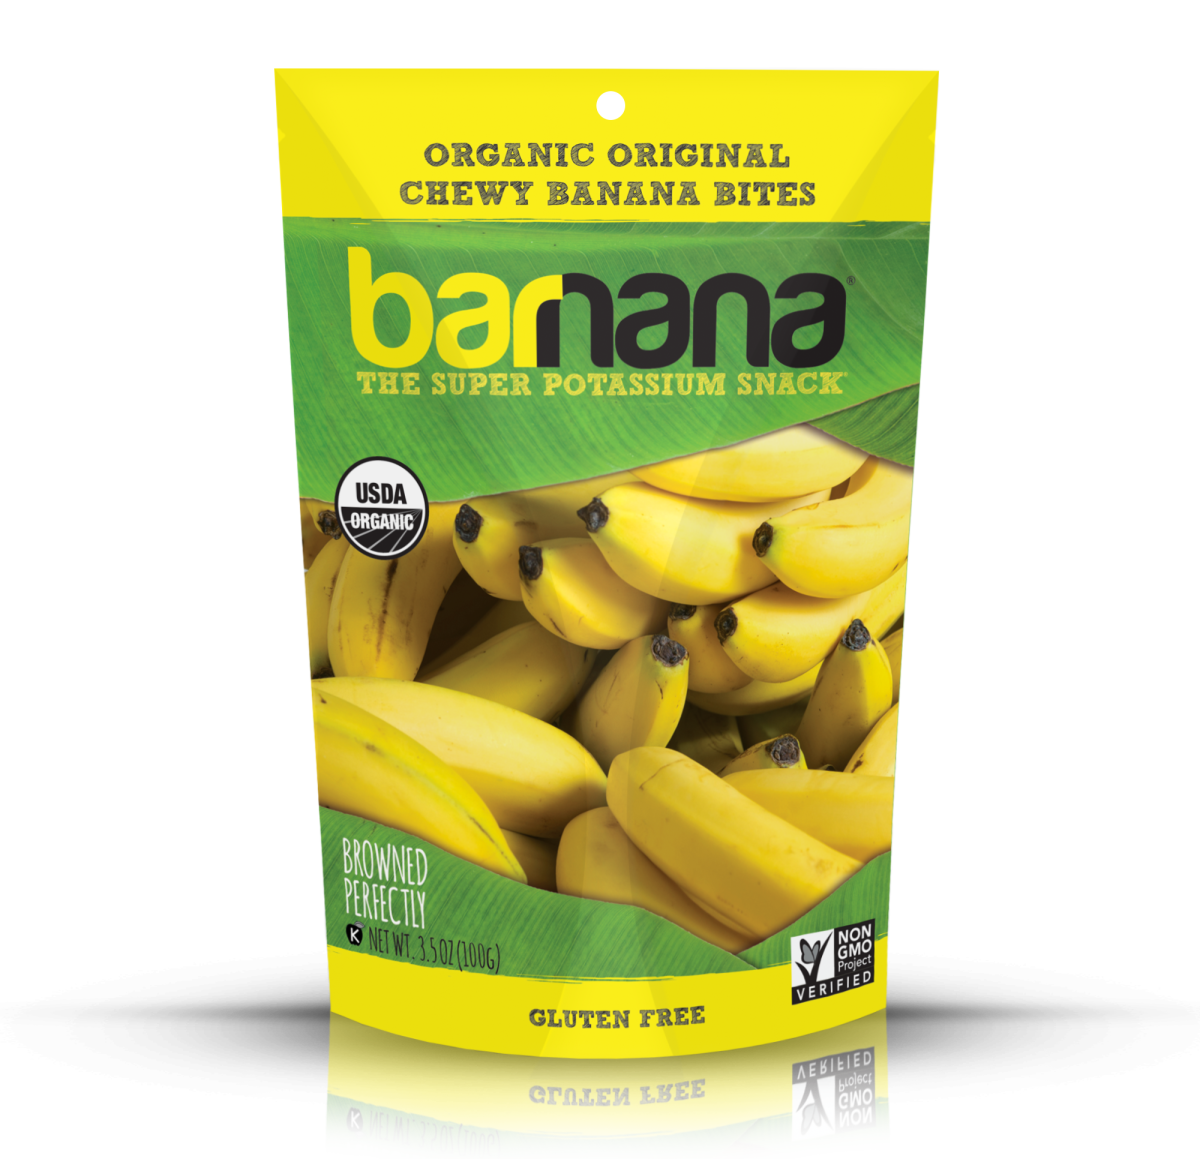 BARNANA - MOCK UP - 100G - ORIGINAL 2016